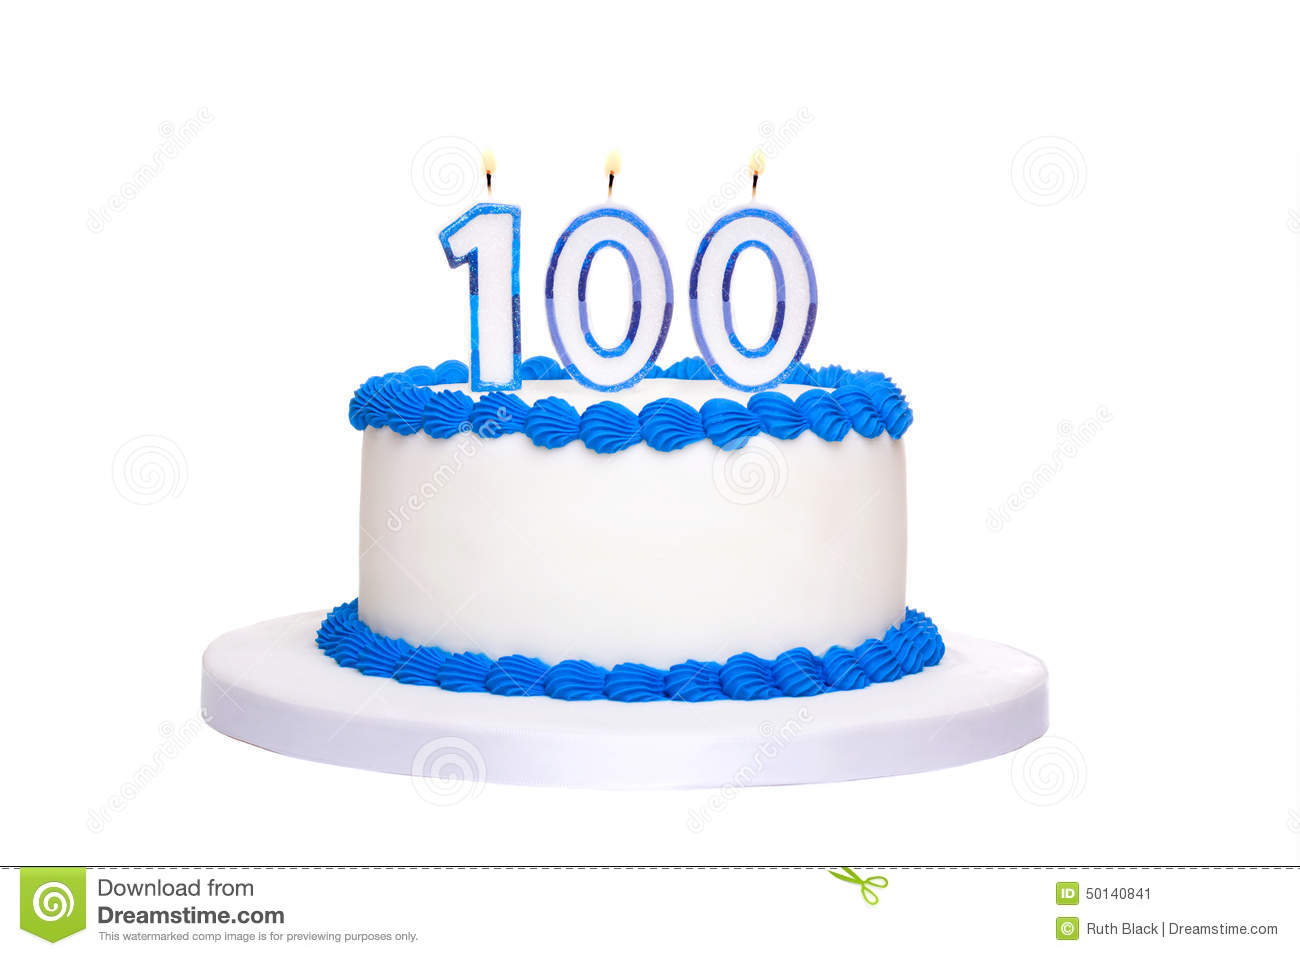 100 birthday clipart black and white download 100th Birthday Cake Stock Photo - Image: 50140841 black and white download